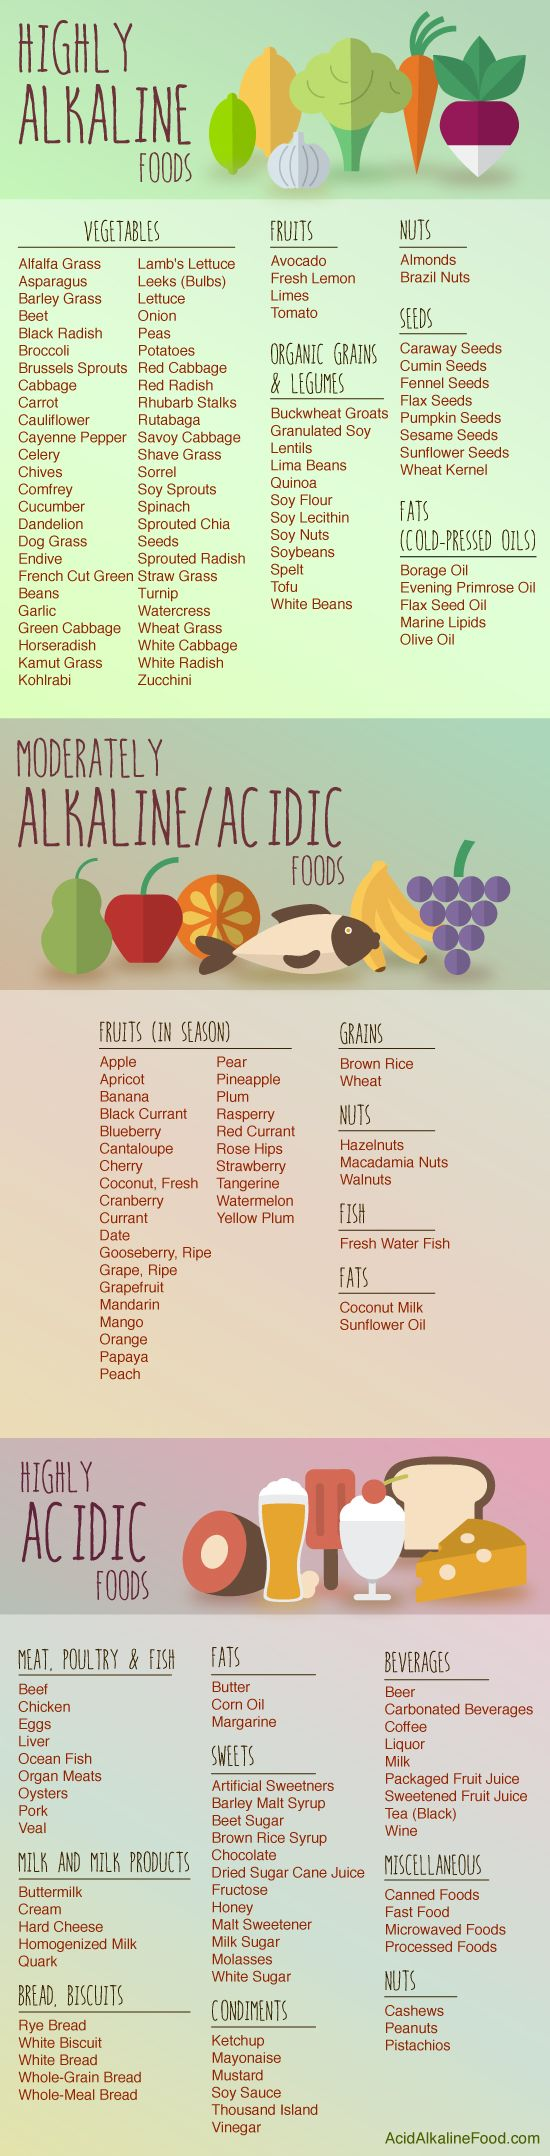 Visit www.acidalkalinefood.com for a printable PDF version of this acid alkaline food chart!